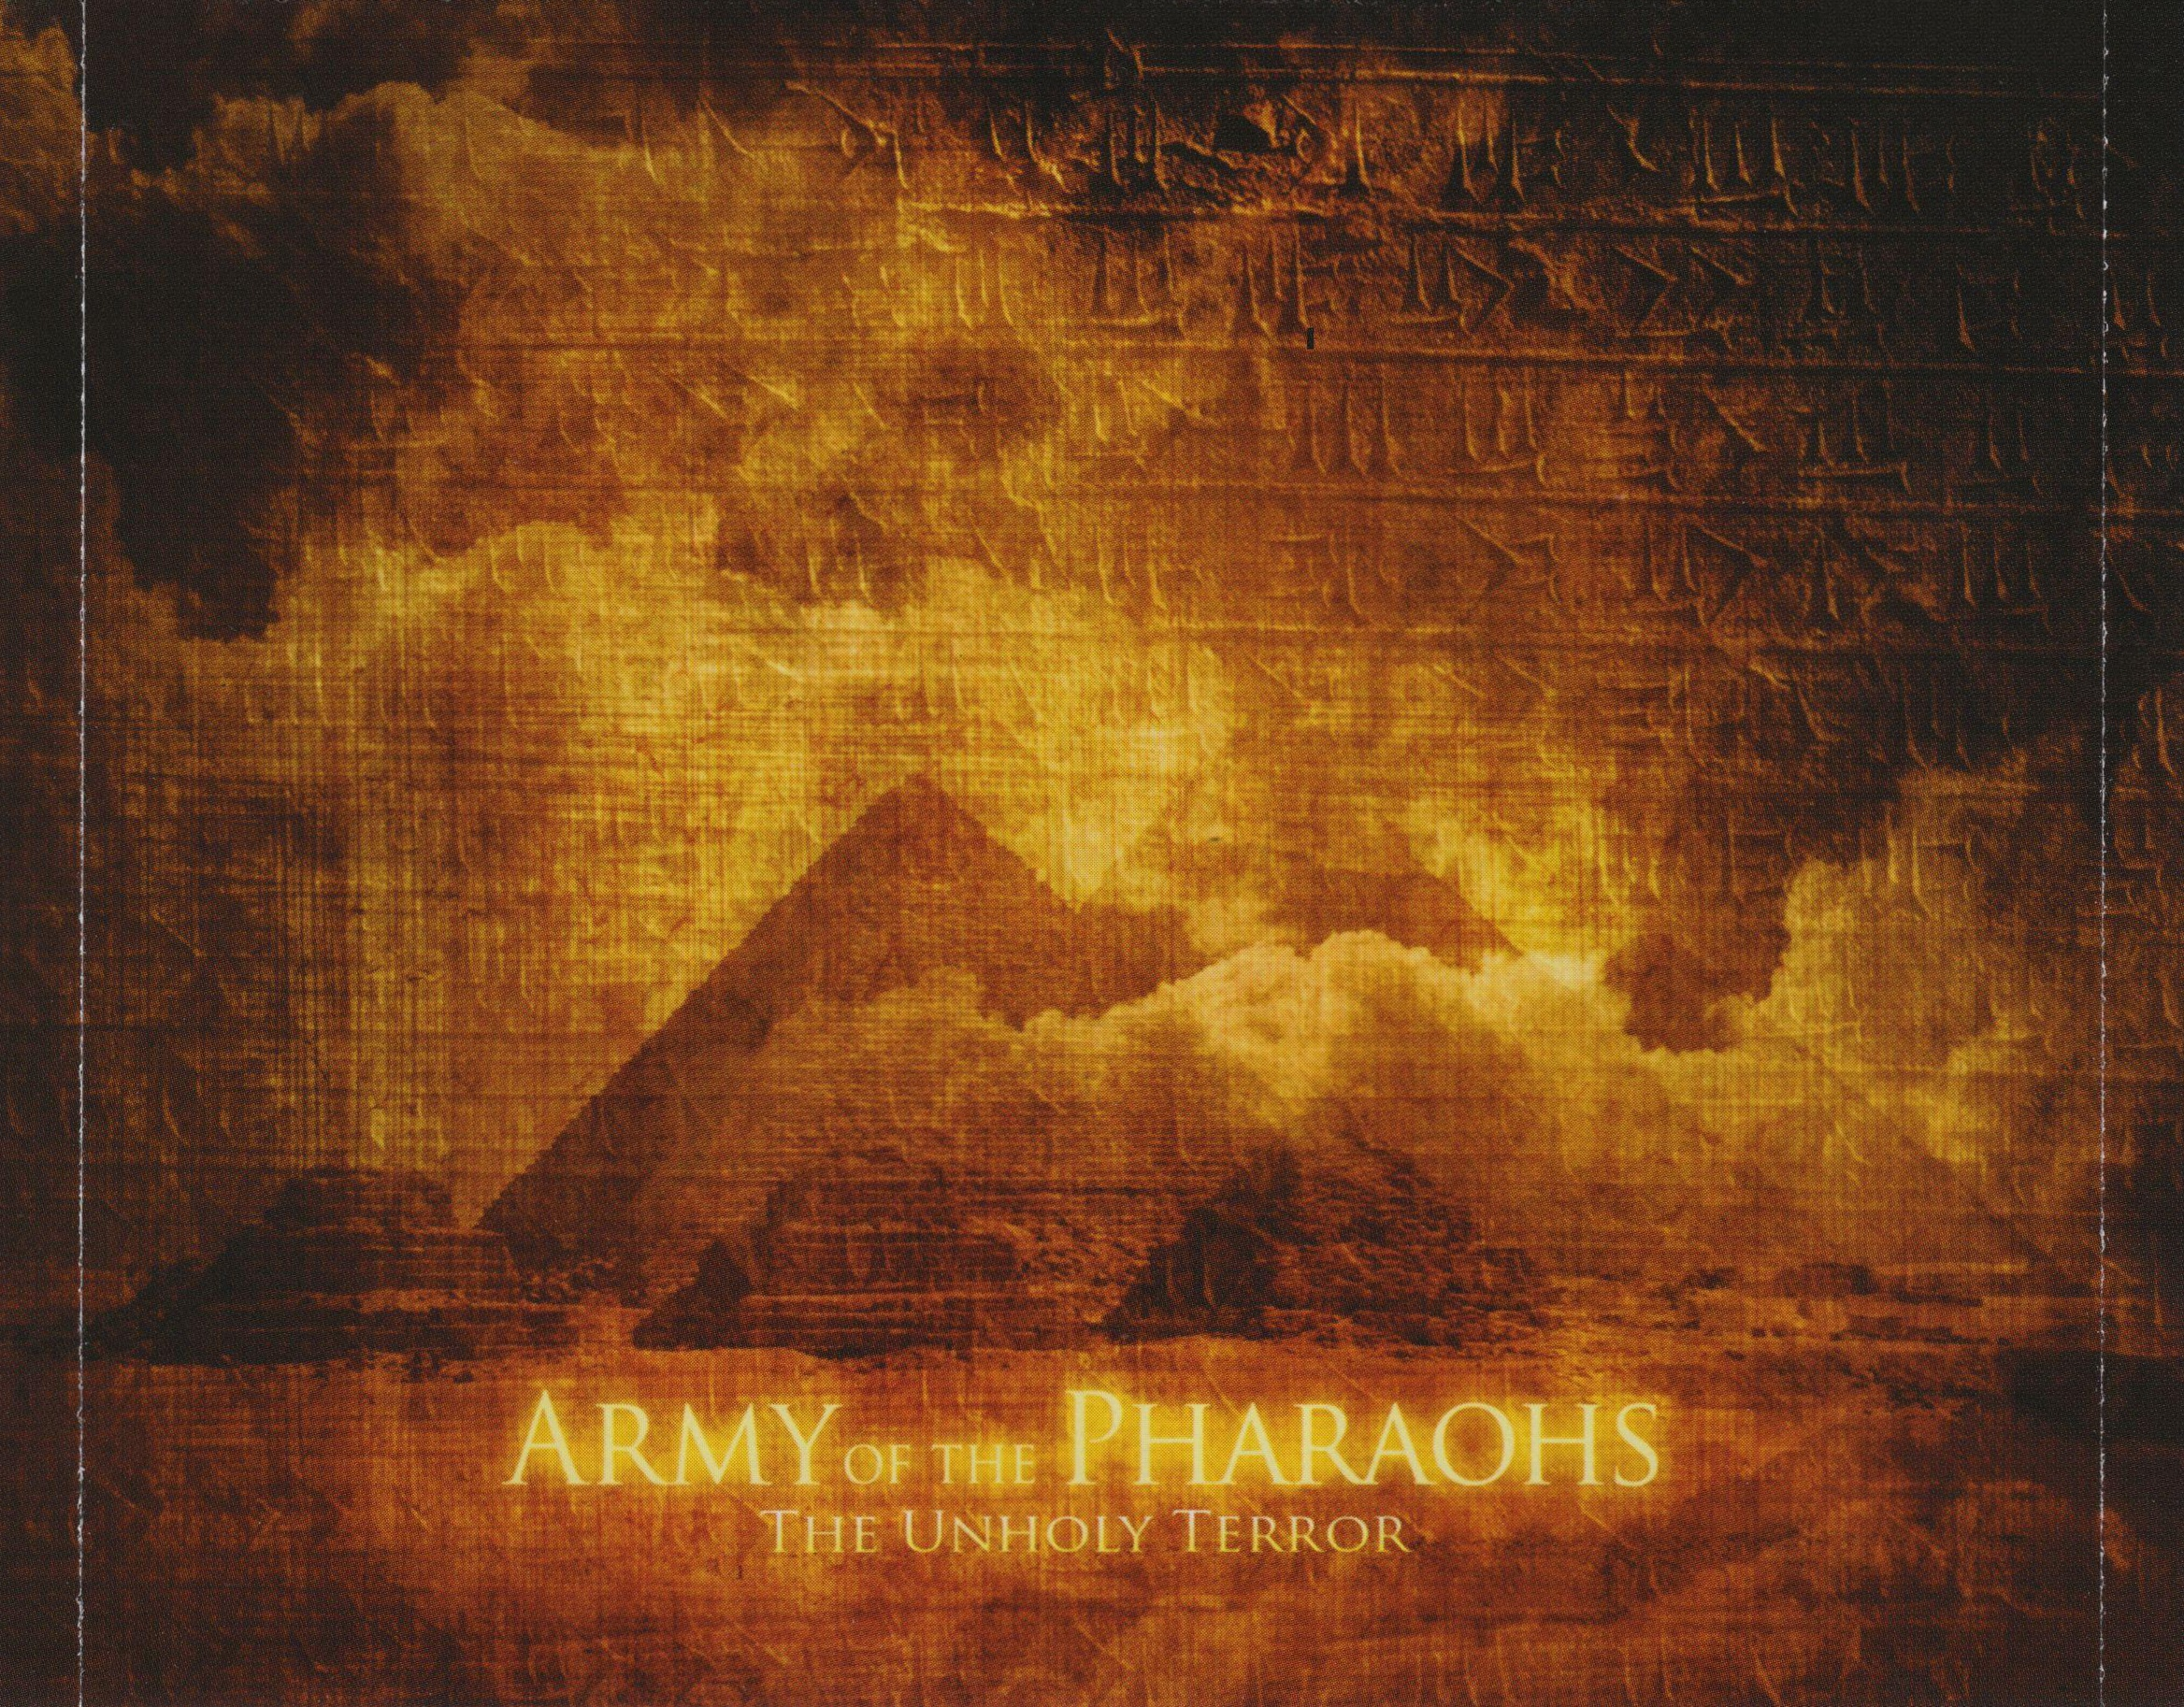 Spaz out army of the pharaohs download itunes